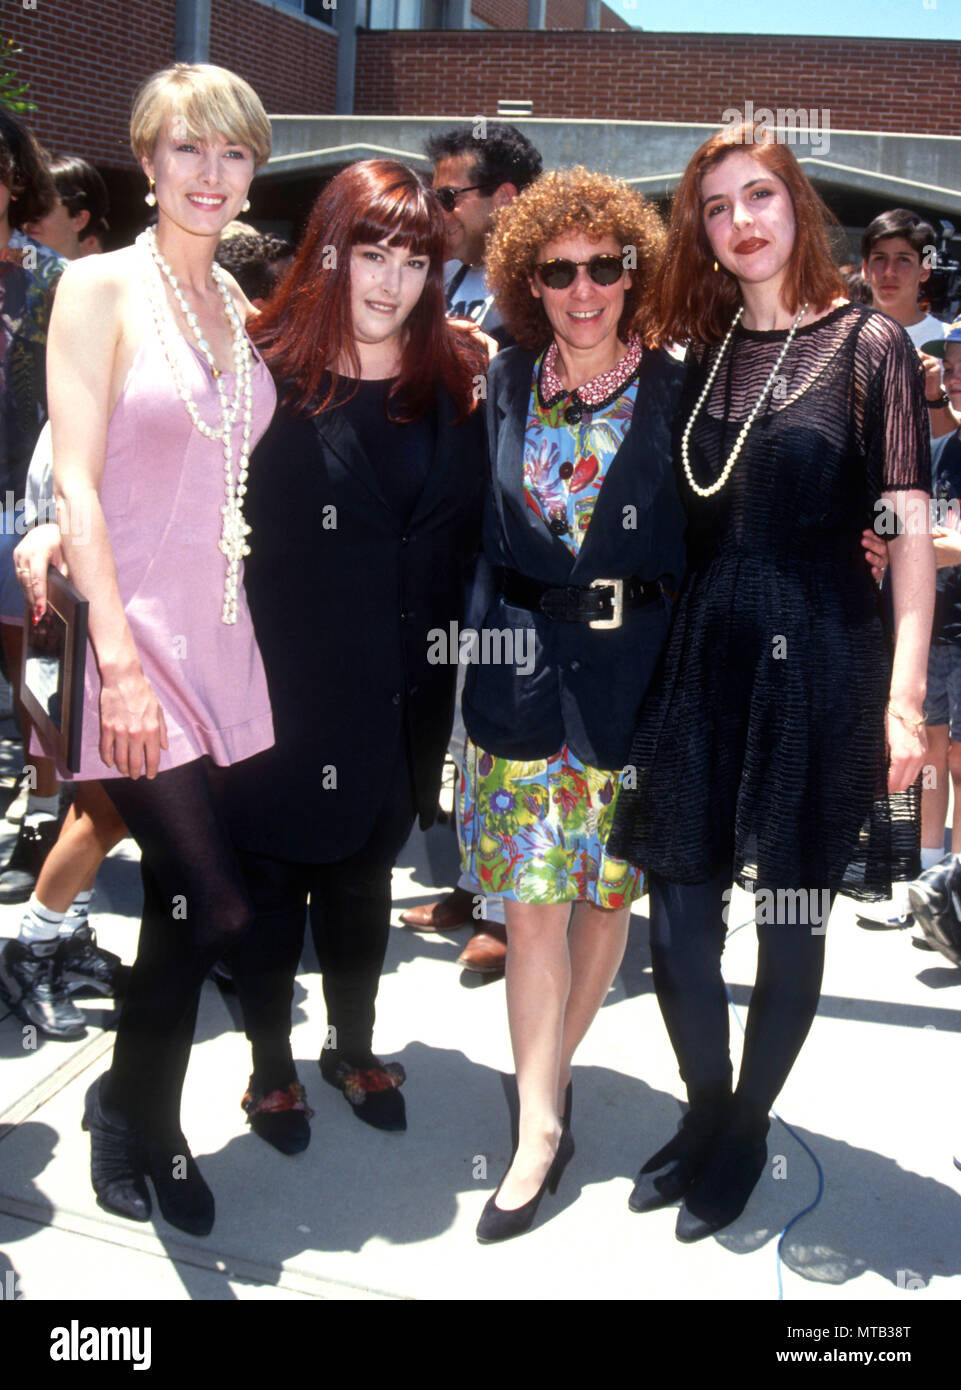 LOS ANGELES, CA - JUNE 3: (L-R) Singers Chynna Phillips. Carnie Wilson, actress Rhea Perlman and Wendy Wilson of Music group Wilson Phillips attend event for National Sober Driving Campaign on June 3, 1991 in Los Angeles, California. Photo by Barry King/Alamy Stock Photo - Stock Image